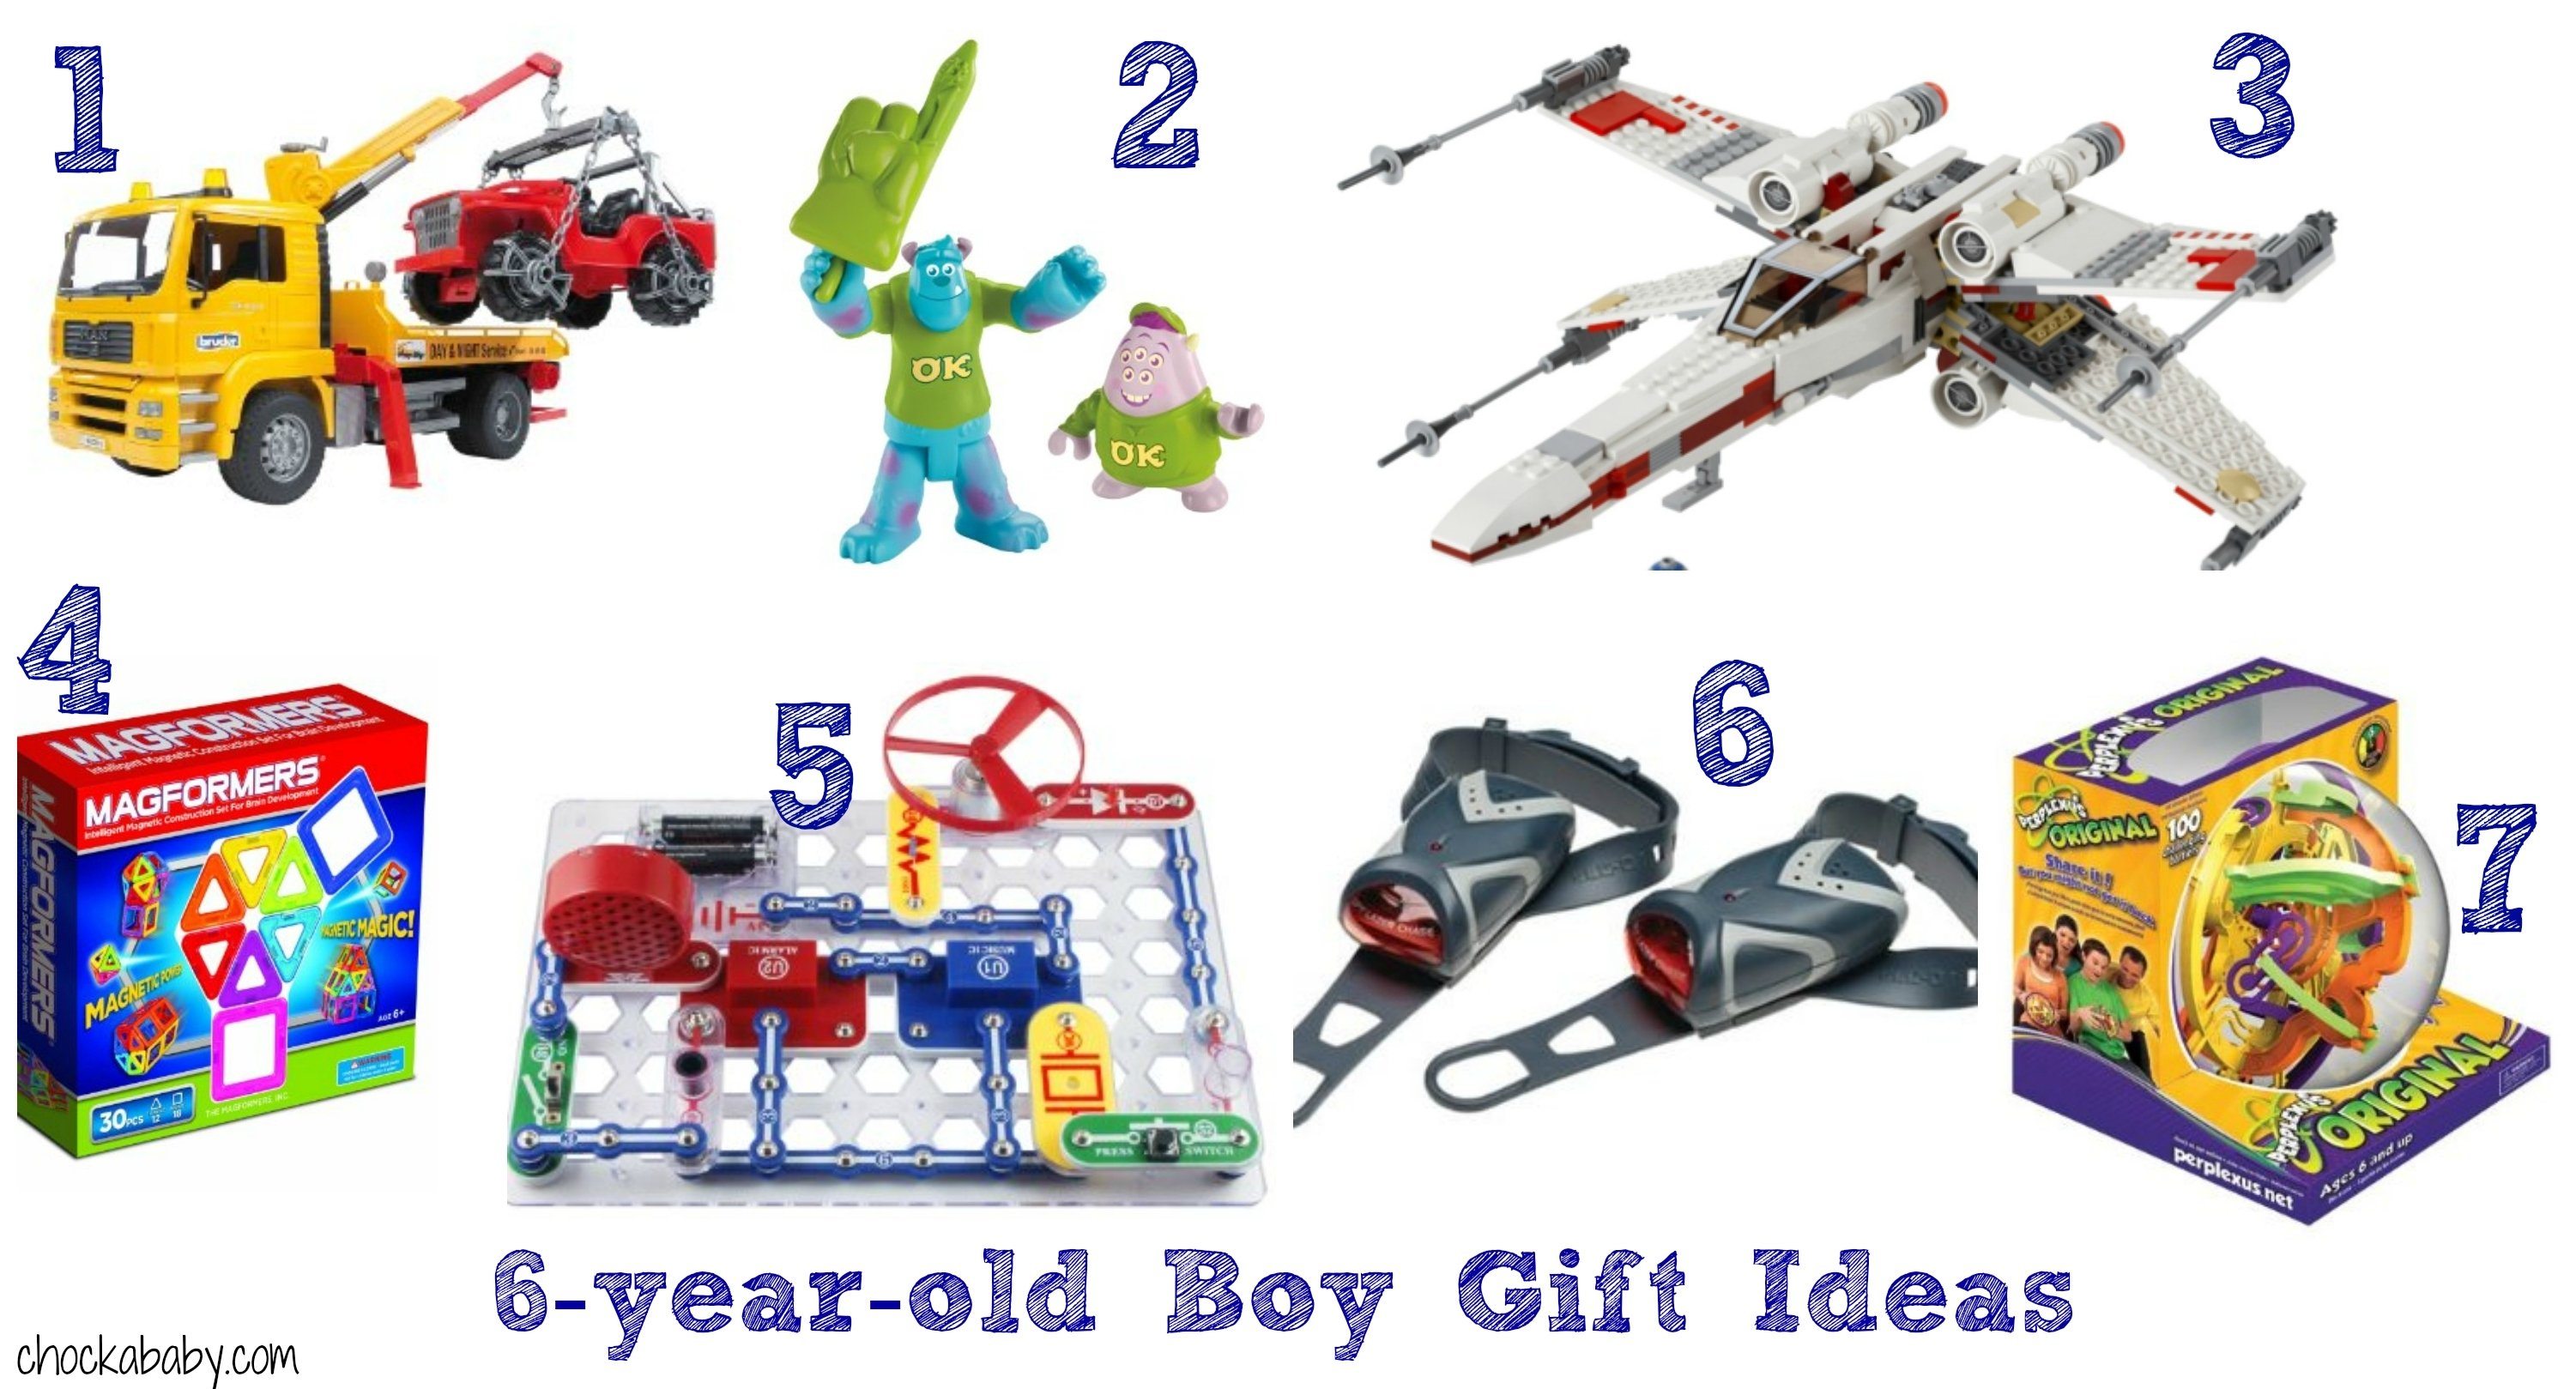 10 Unique Christmas Gift Ideas For 14 Year Old Boys year old boy birthday gift ideas home design ideas 1 2020